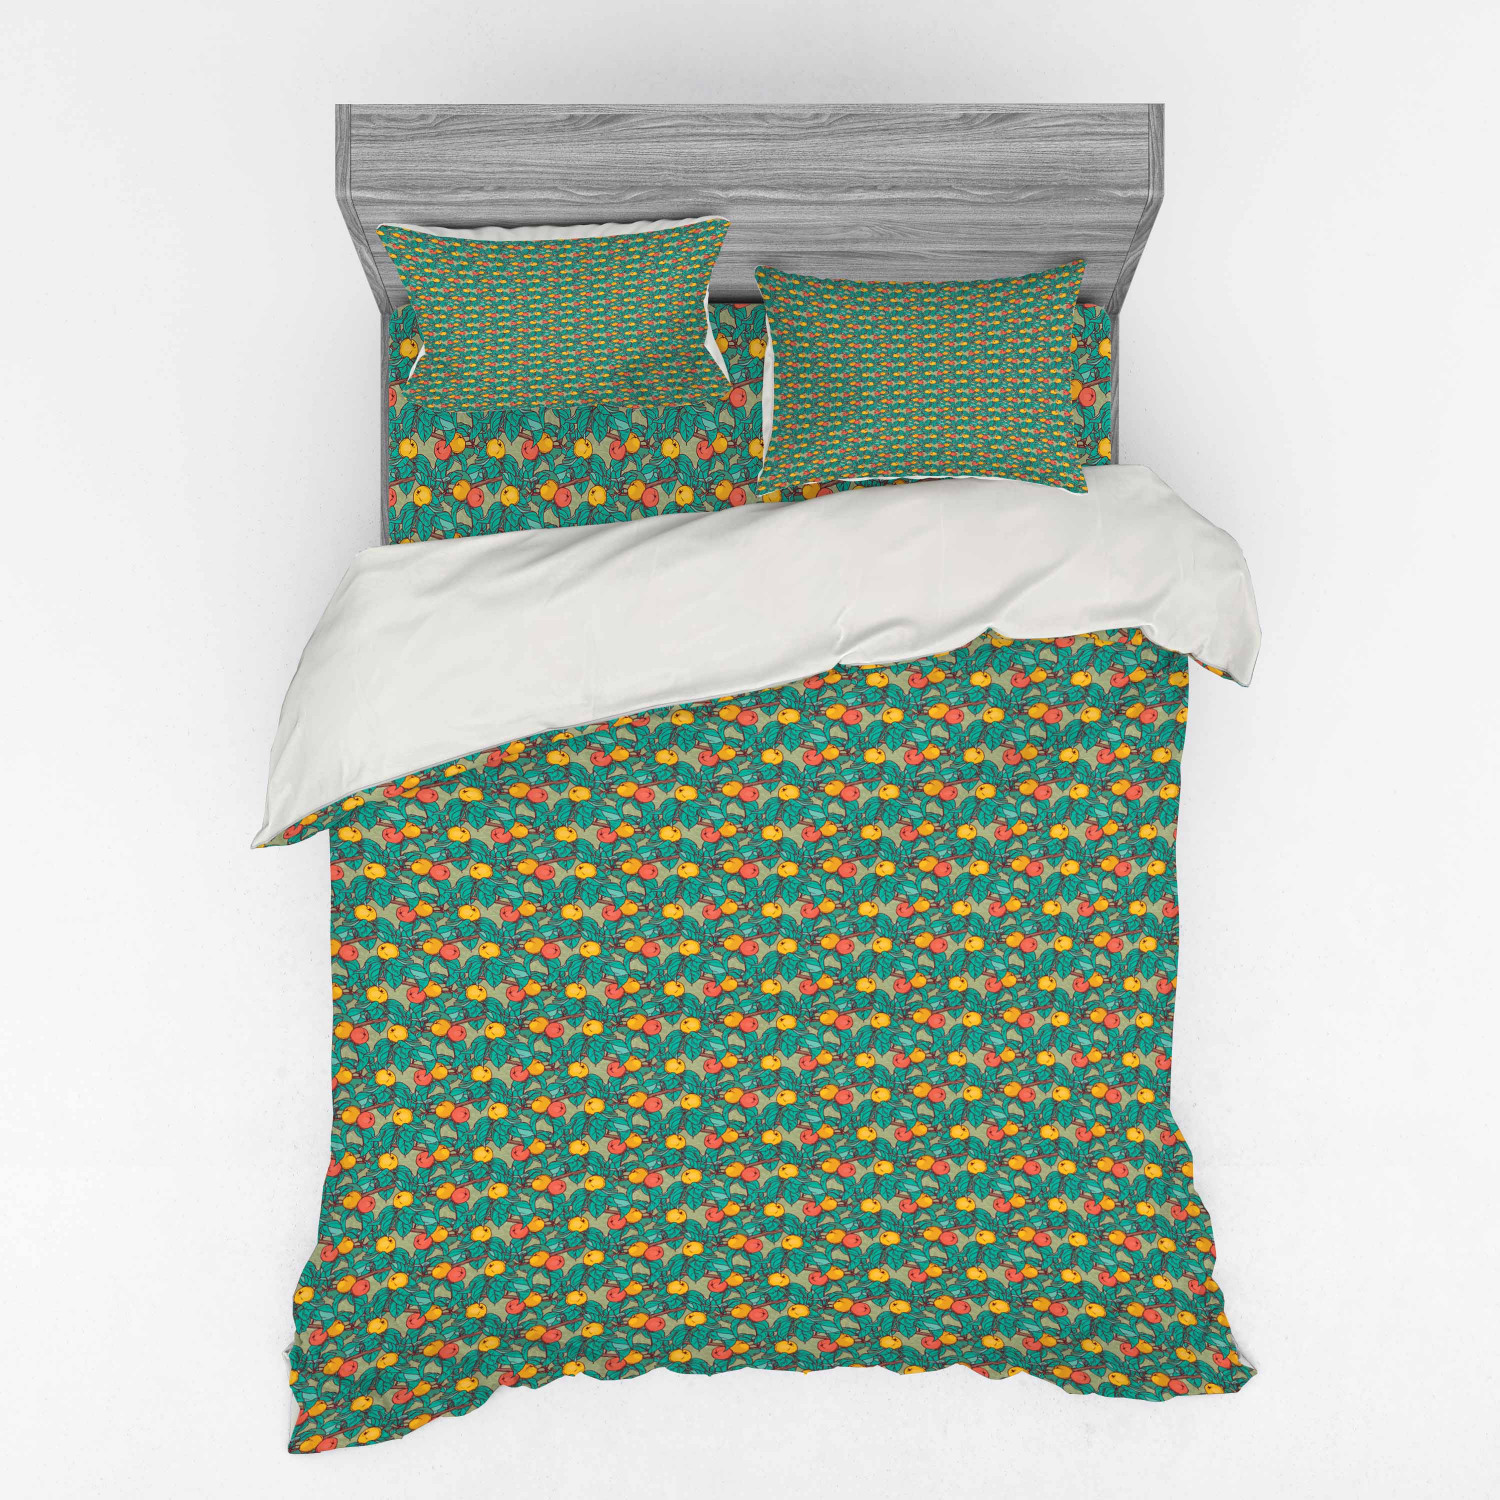 thumbnail 10 - Ambesonne Summer Bedding Set Duvet Cover Sham Fitted Sheet in 3 Sizes